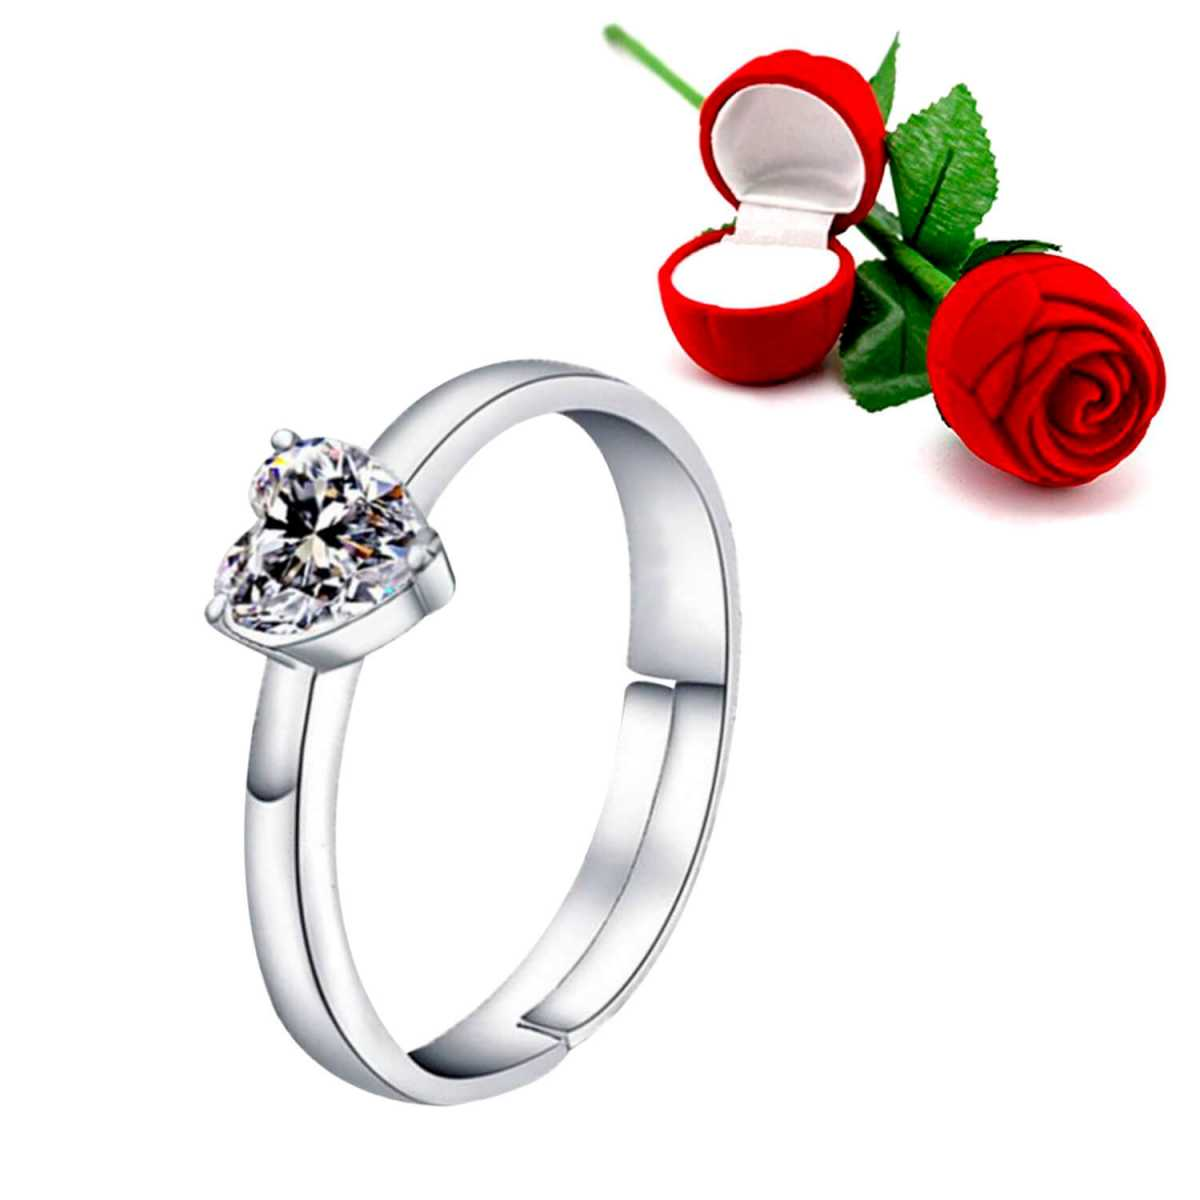 Silver Shine Silver Plated Adjustable Ring with 1 Piece Red Rose Gift Box  for Girls and women